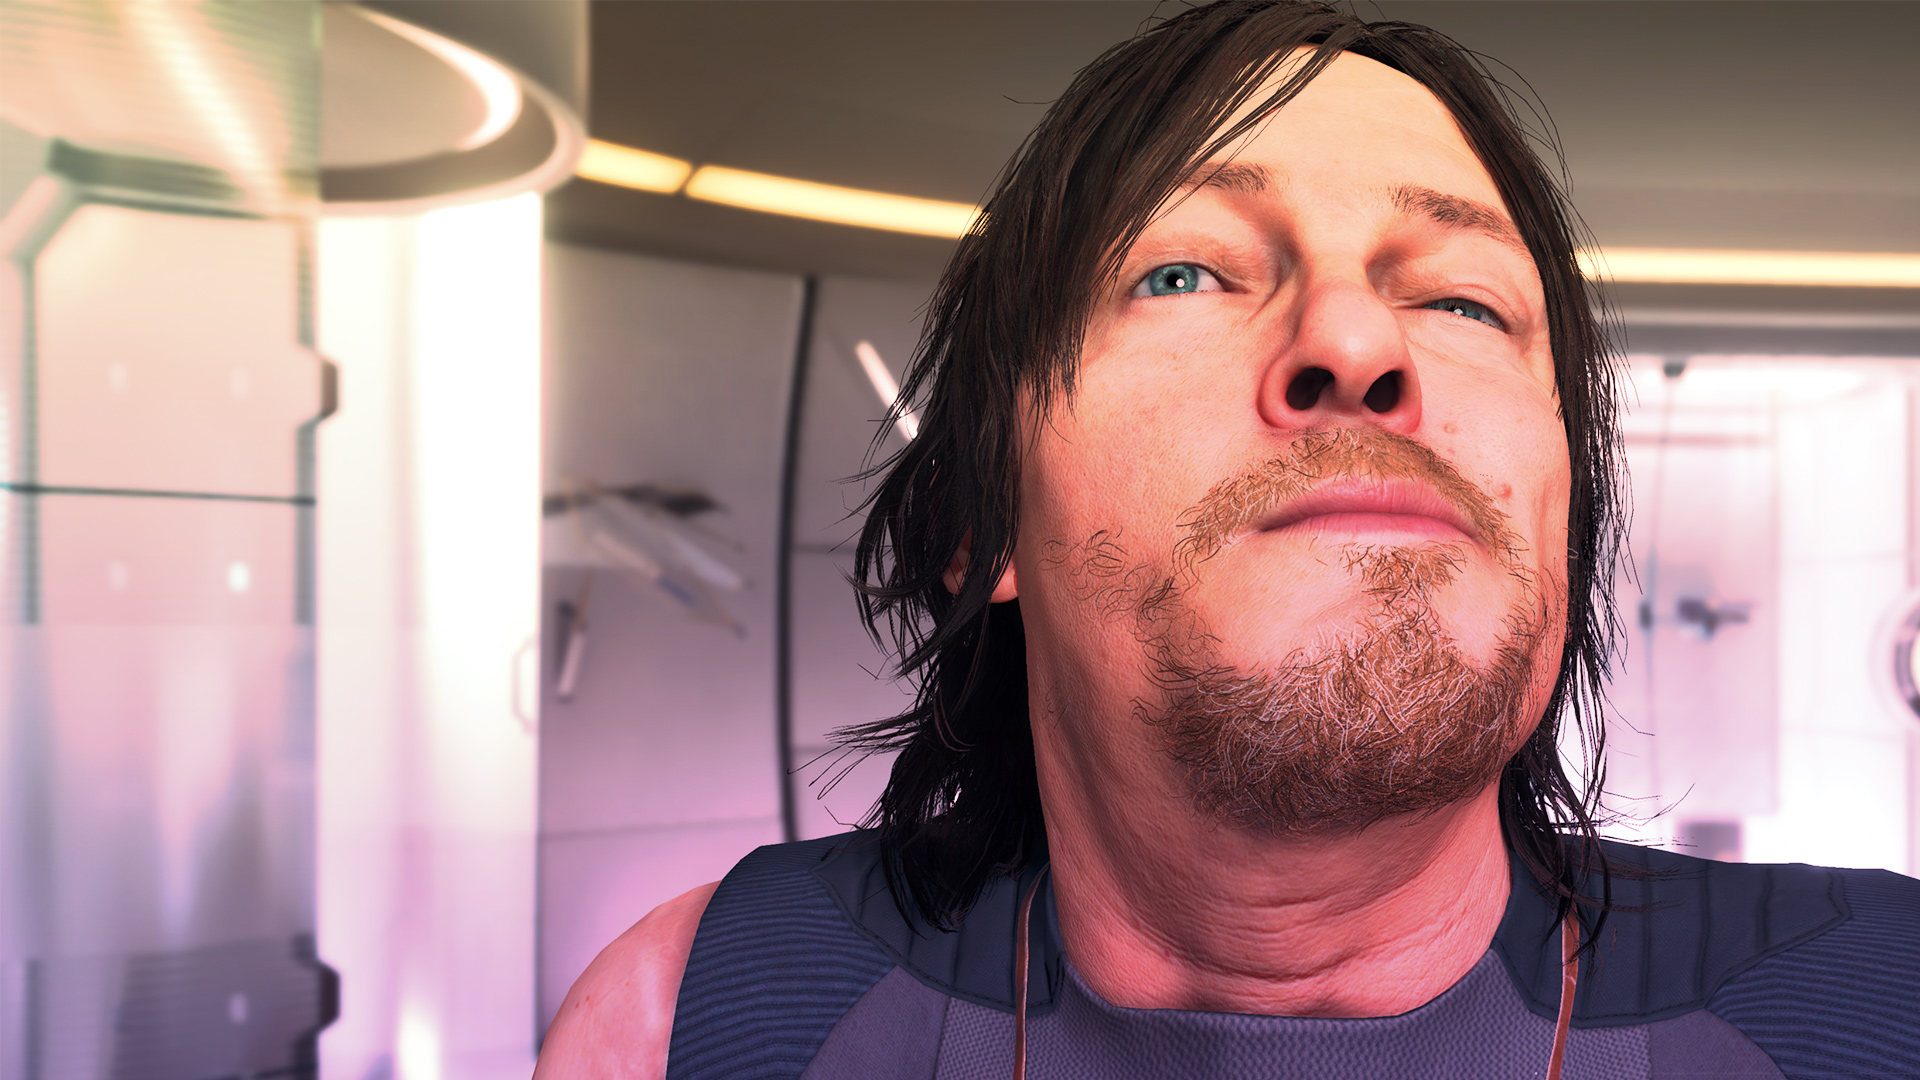 Death Stranding protagonist Sam makes a face in a mirror